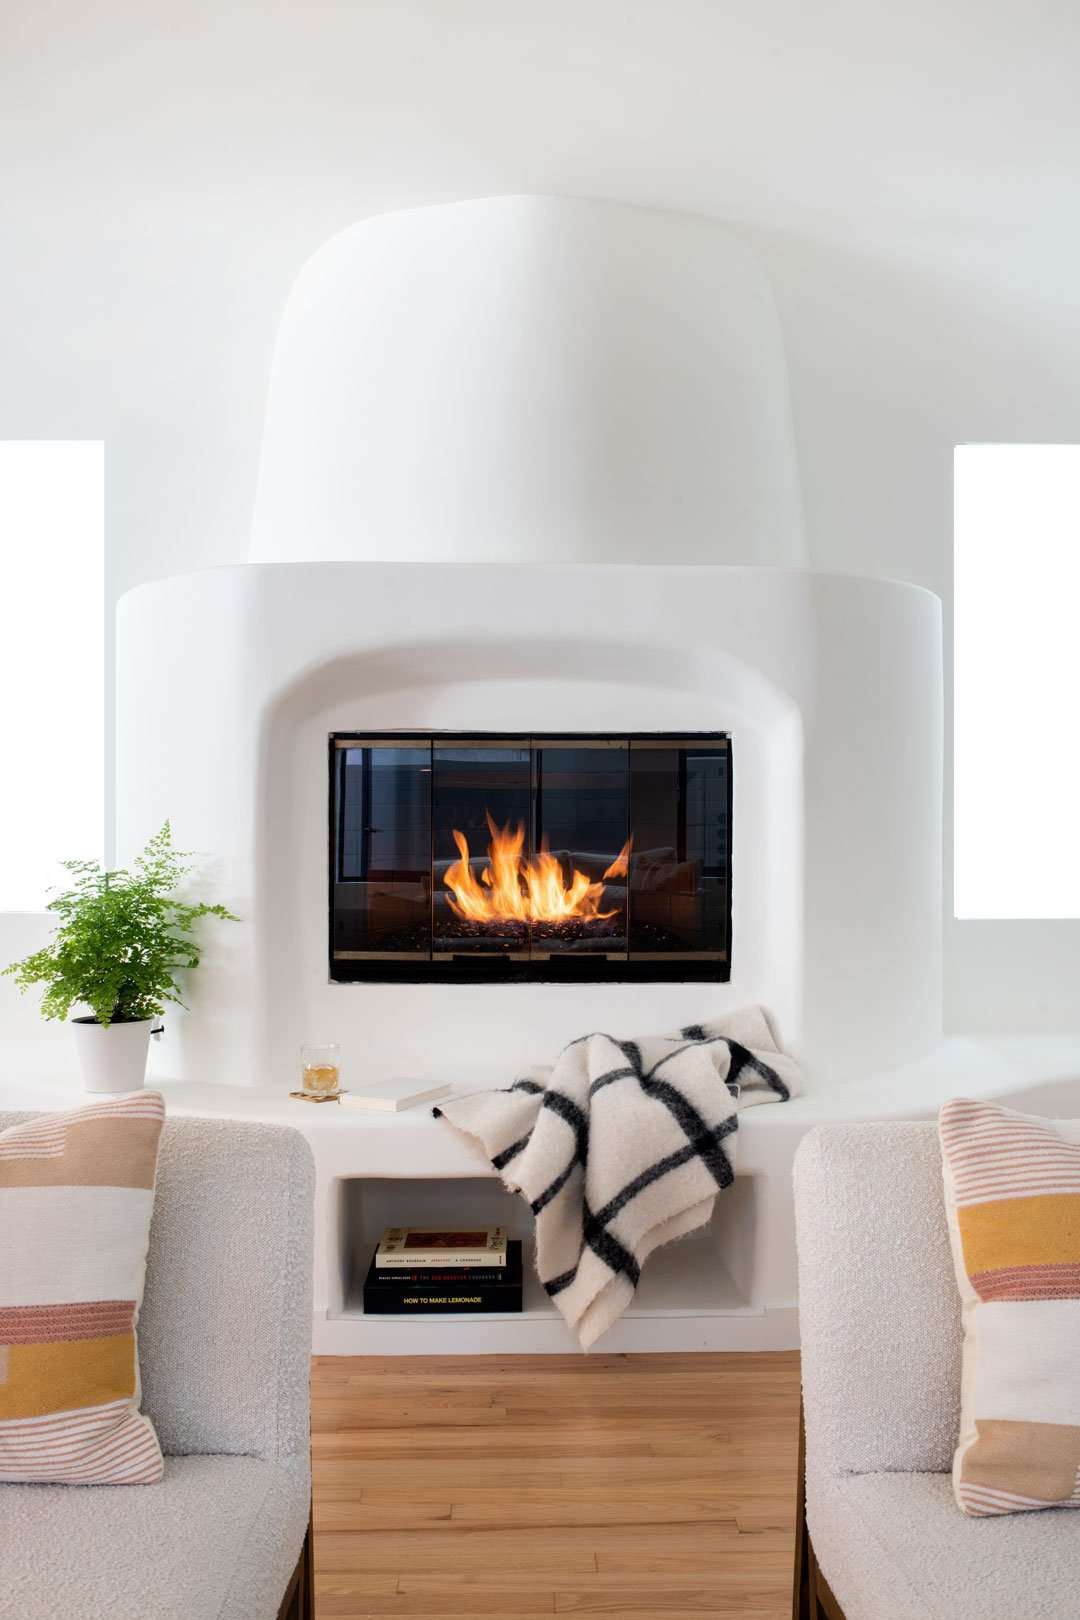 Cozy living room with fireplace, boucle sofas, and knit blanket